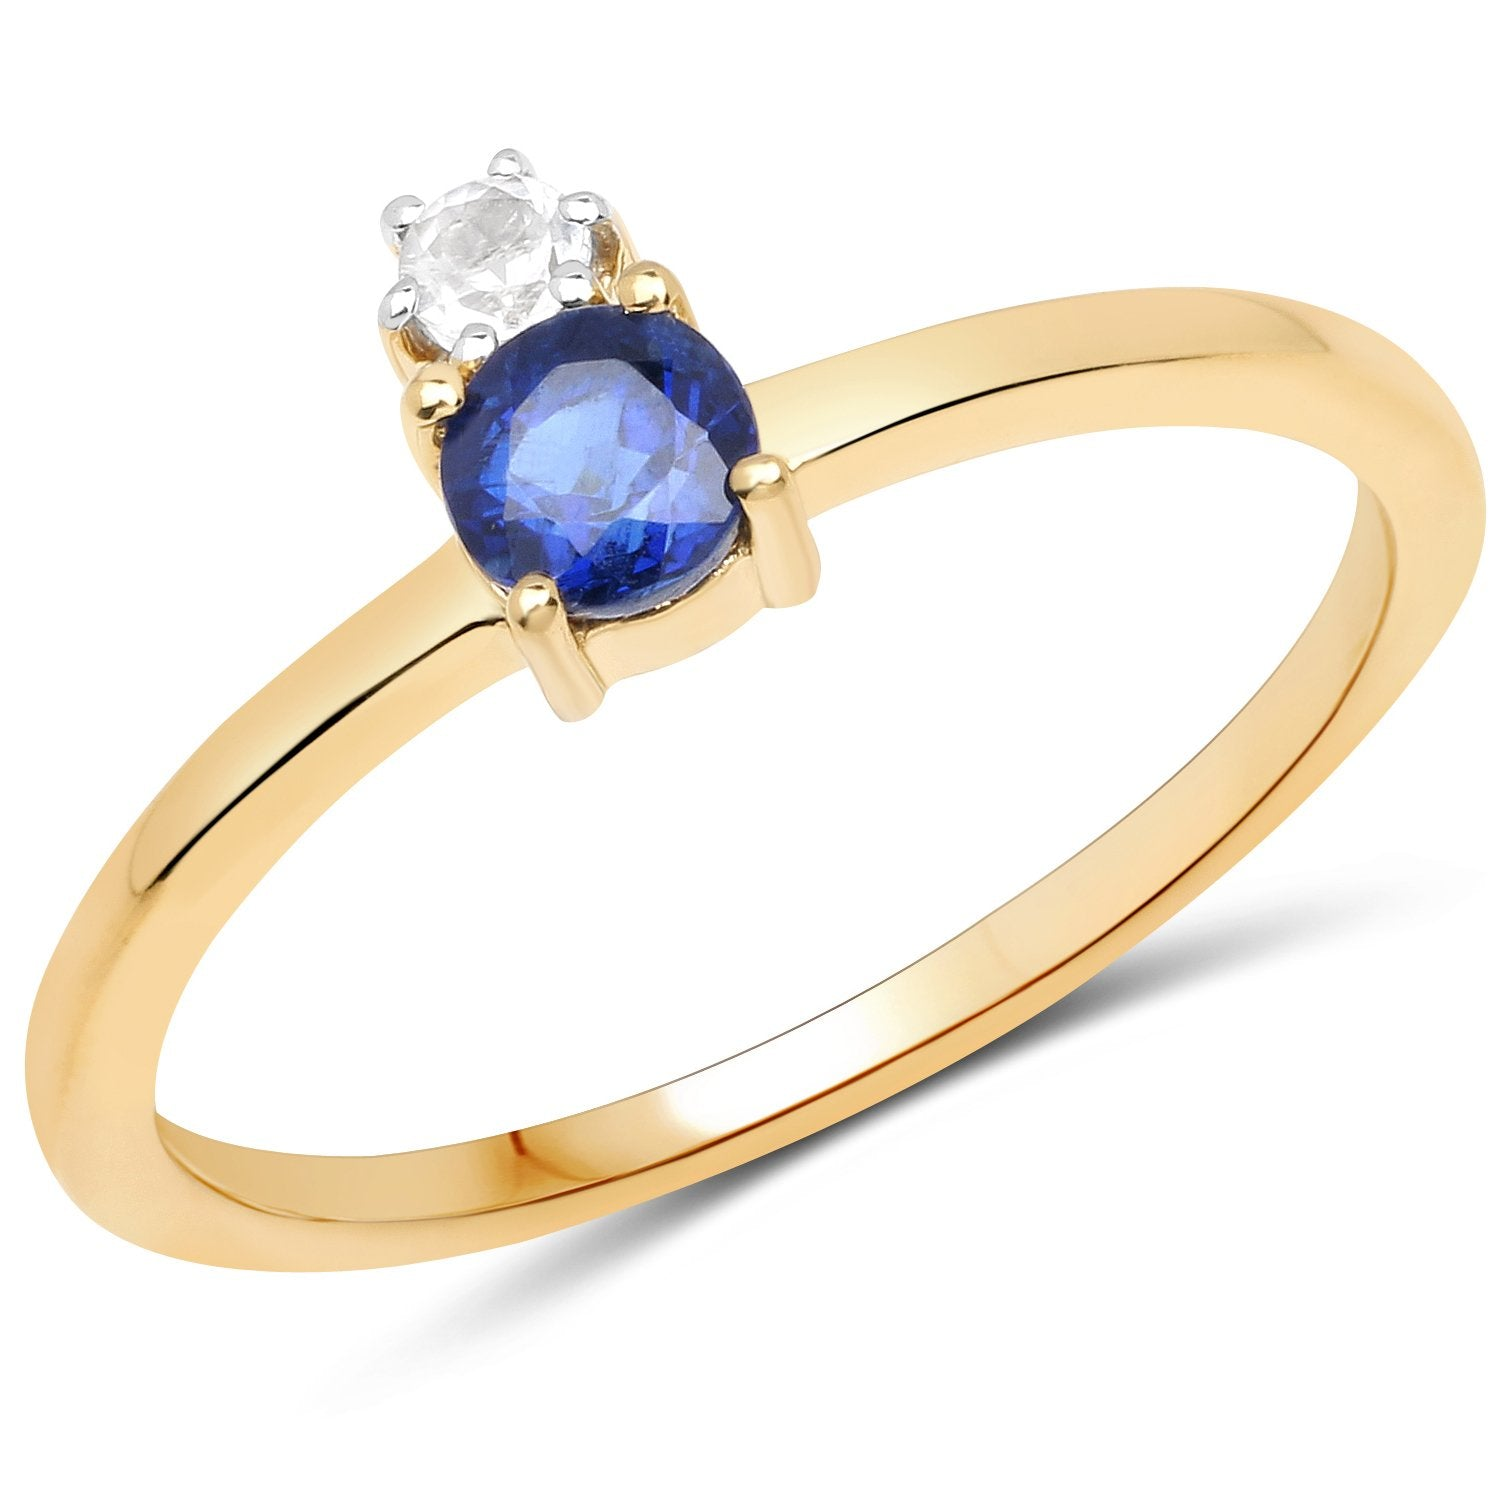 LoveHuang 0.42 Carats Genuine Kyanite and White Topaz Ring Solid .925 Sterling Silver With 18KT Yellow Gold Plating